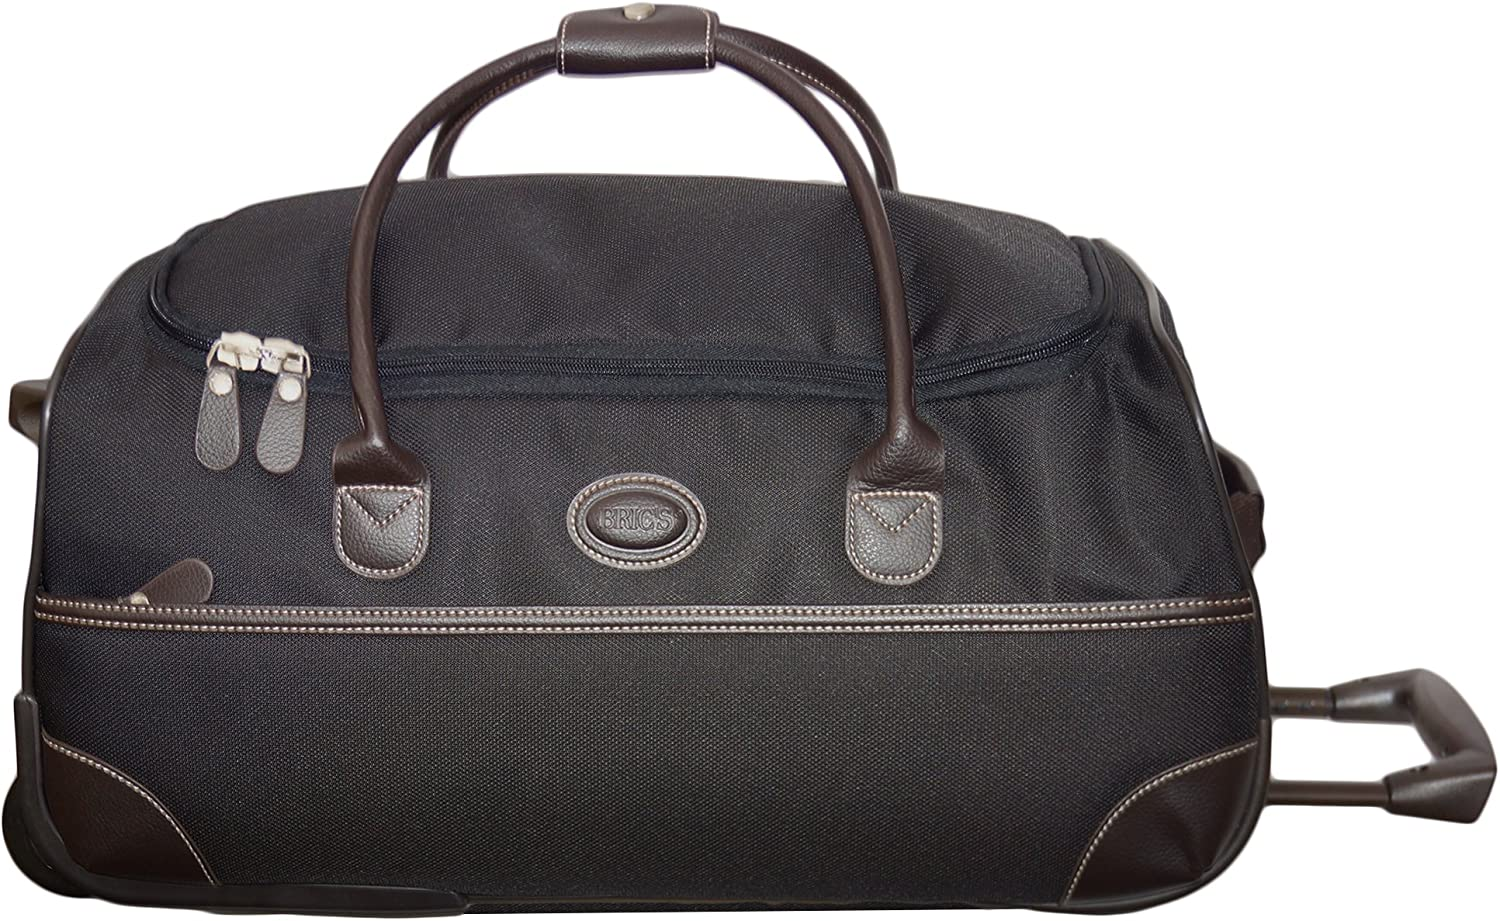 Bric s Luggage Pronto 21 Inch Rolling Duffle, Black, One Size